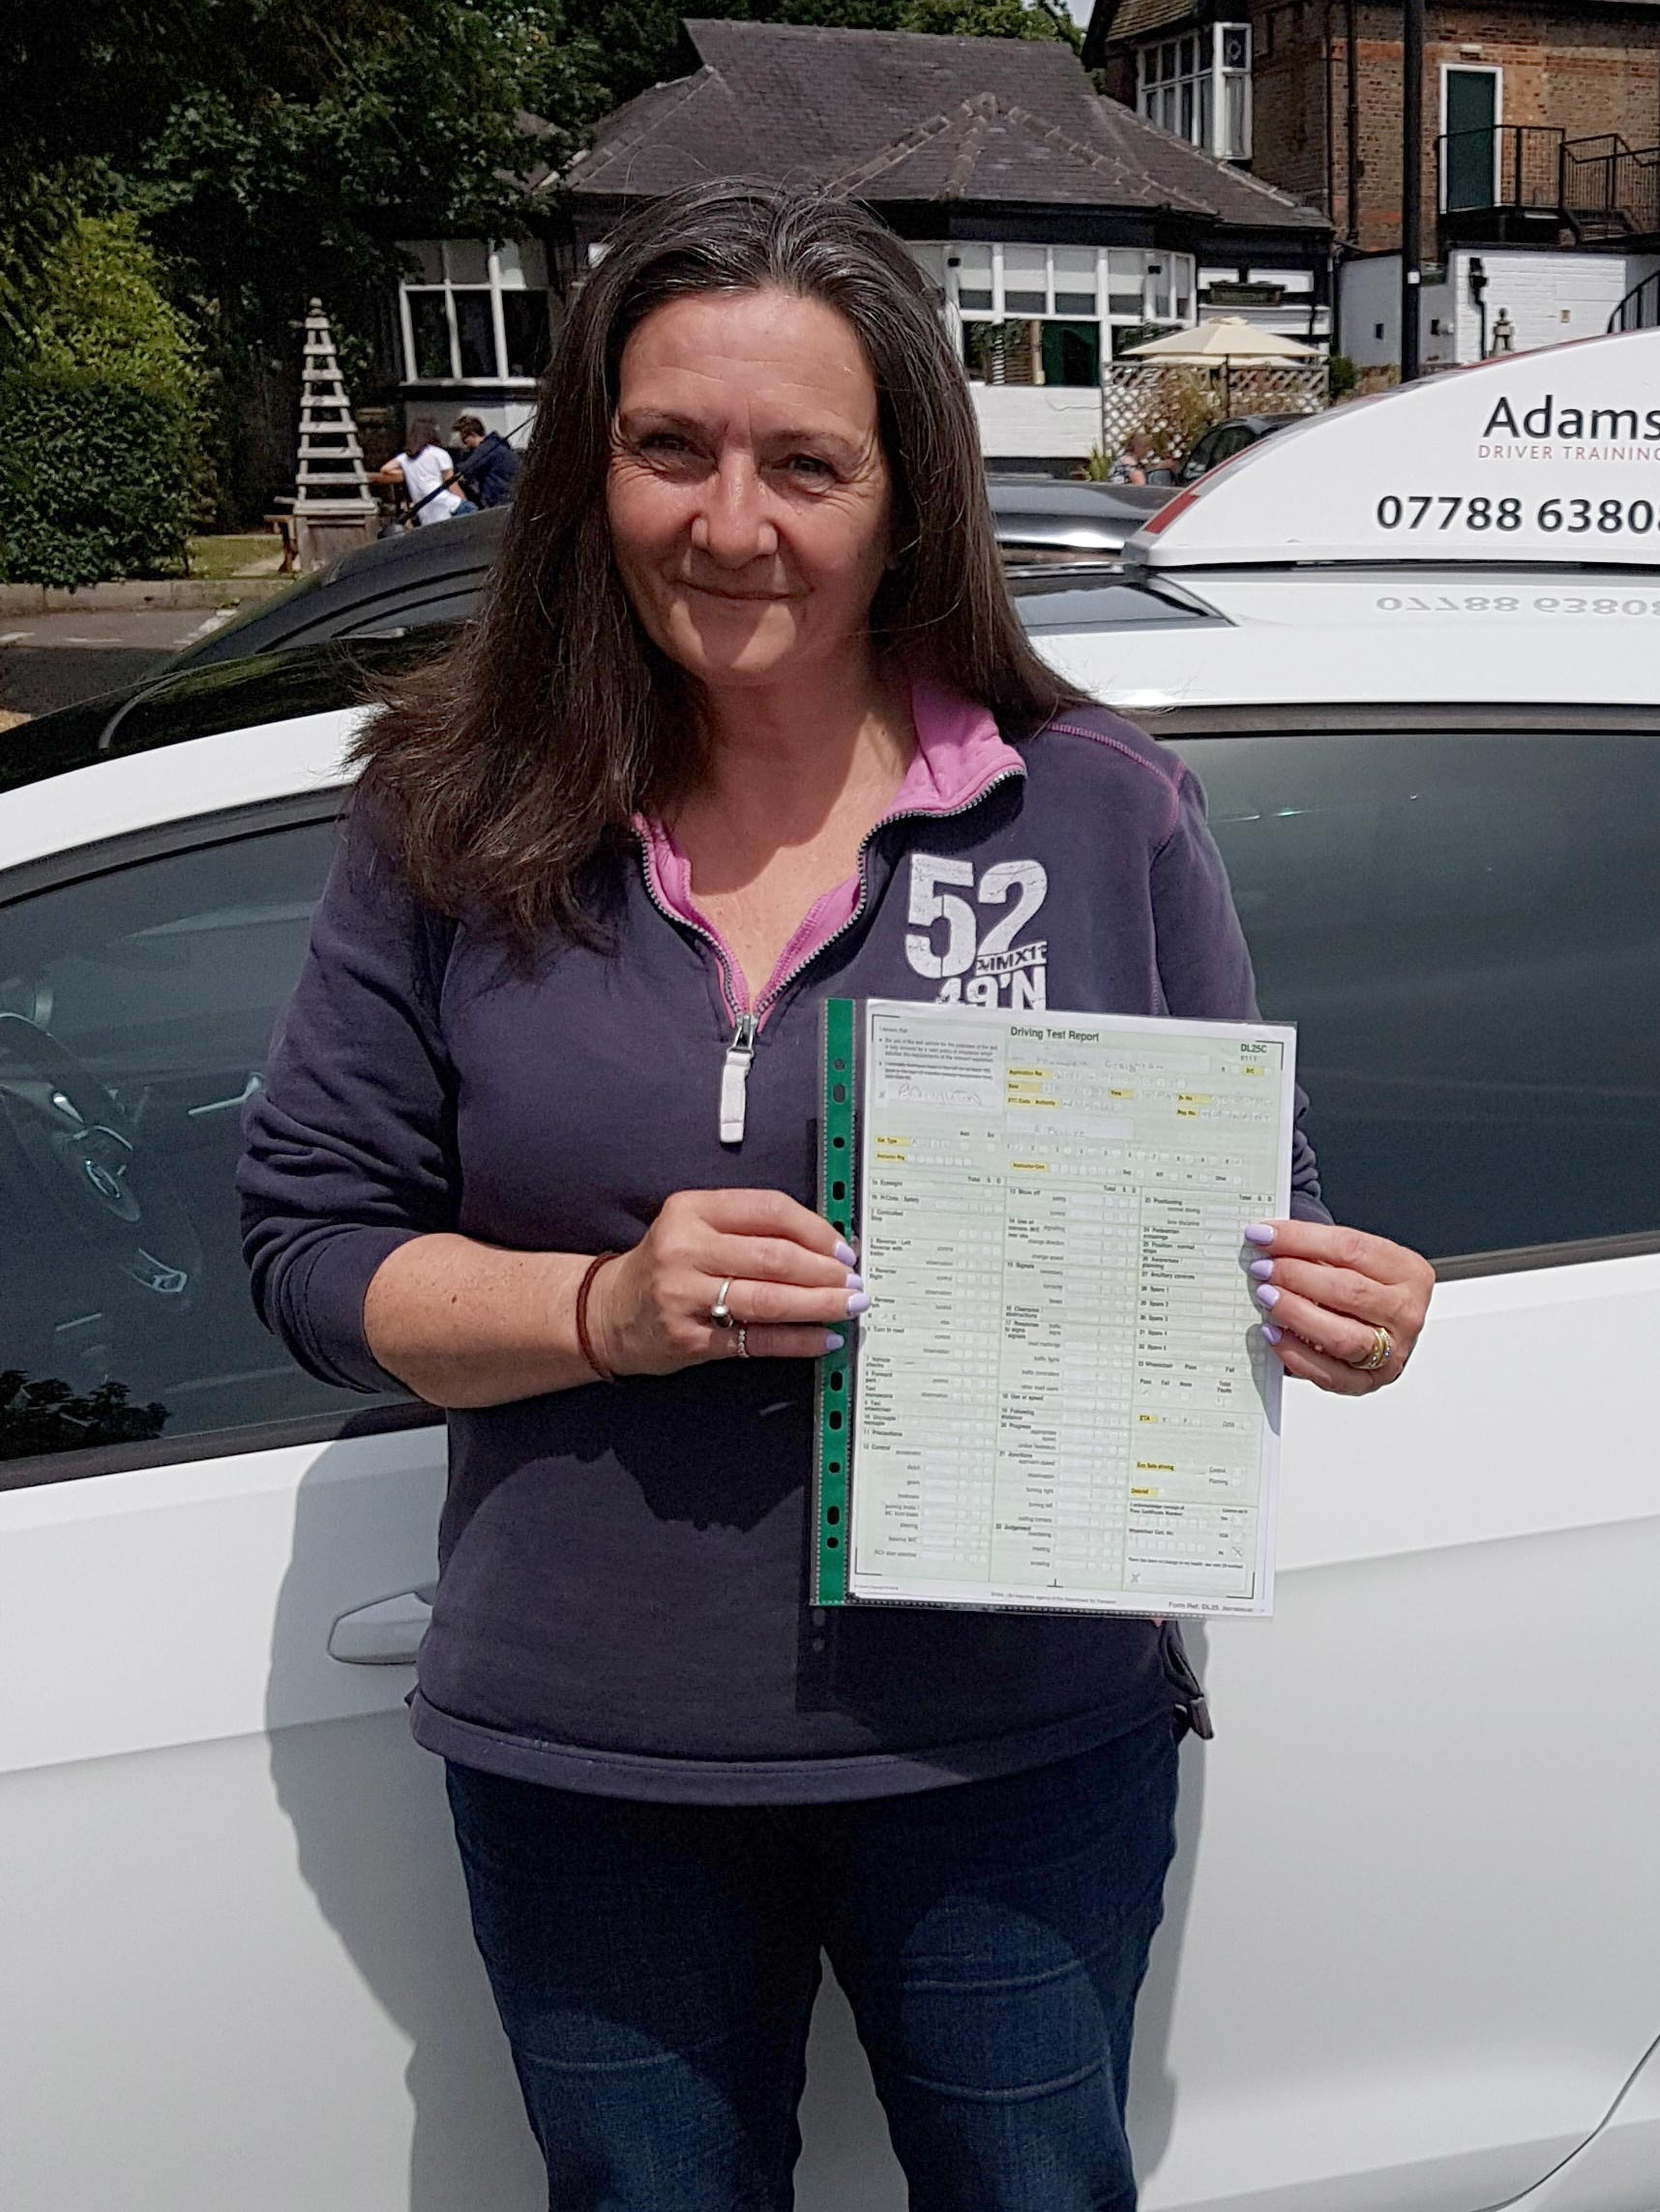 Driving Instructor Training Cheshire